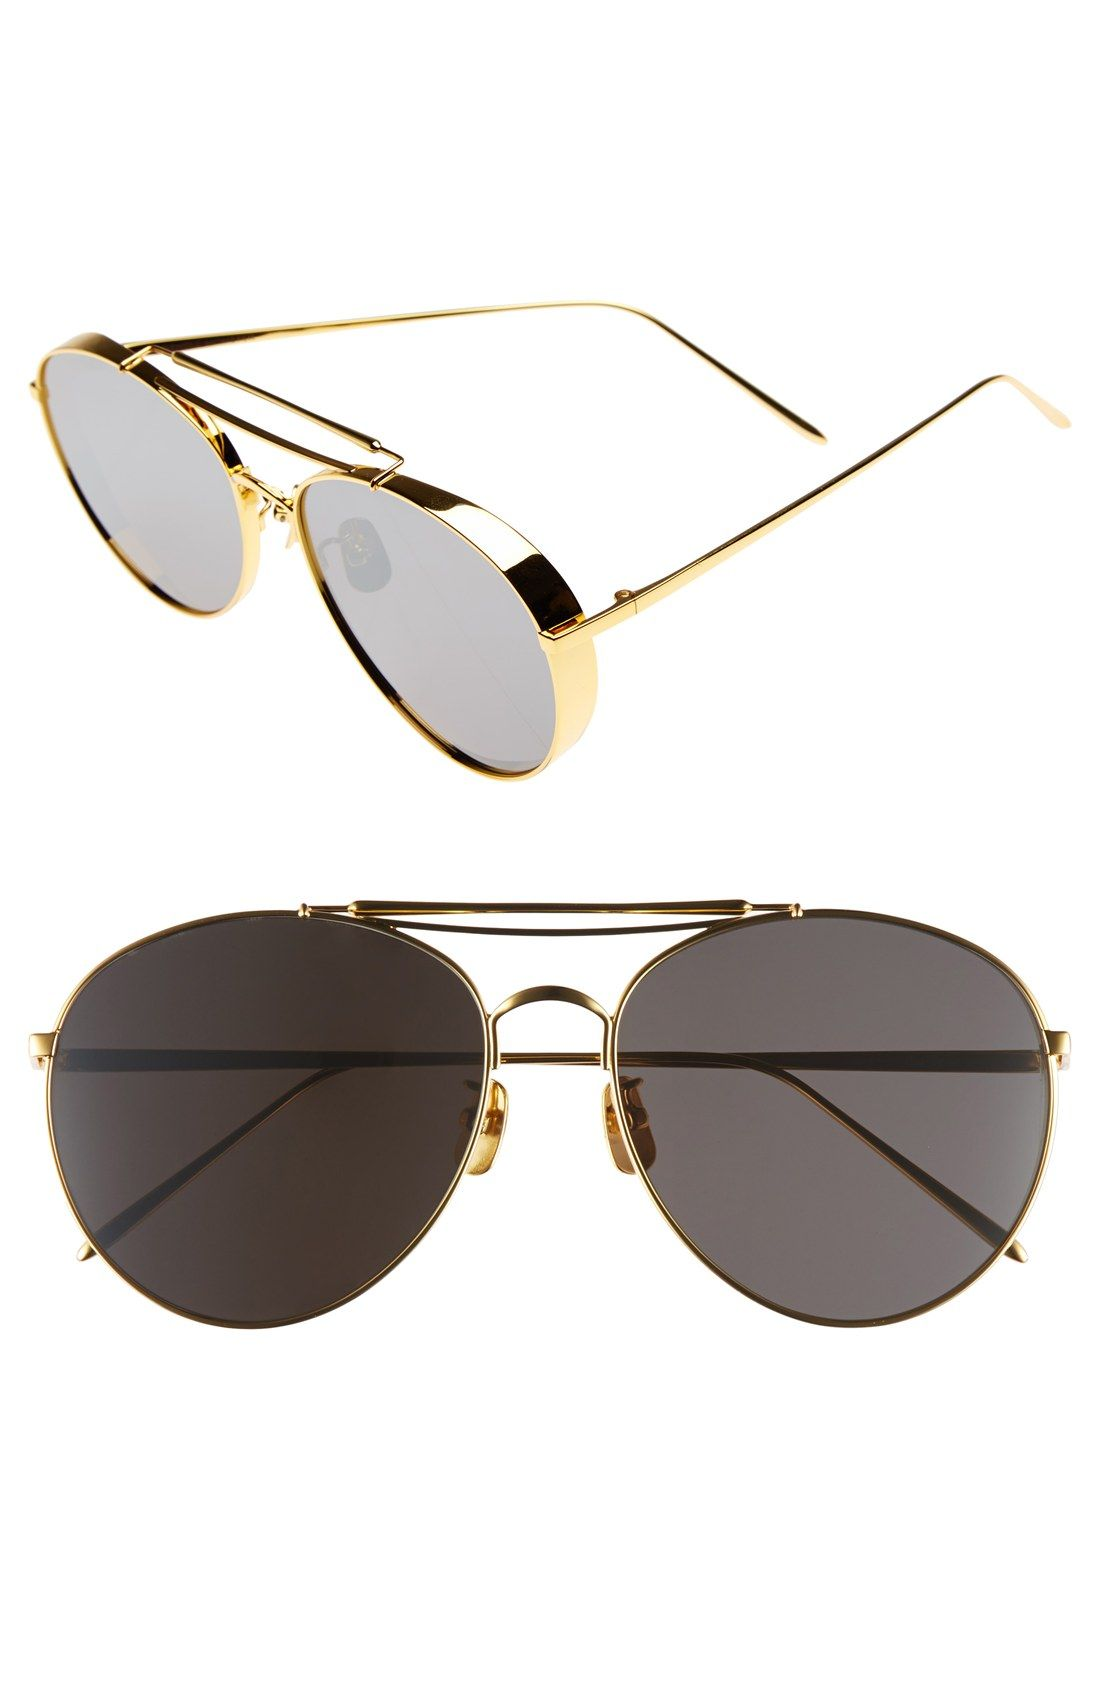 ad77d513099 Gentle Monster 60mm Aviator Sunglasses  305- Nordstrom